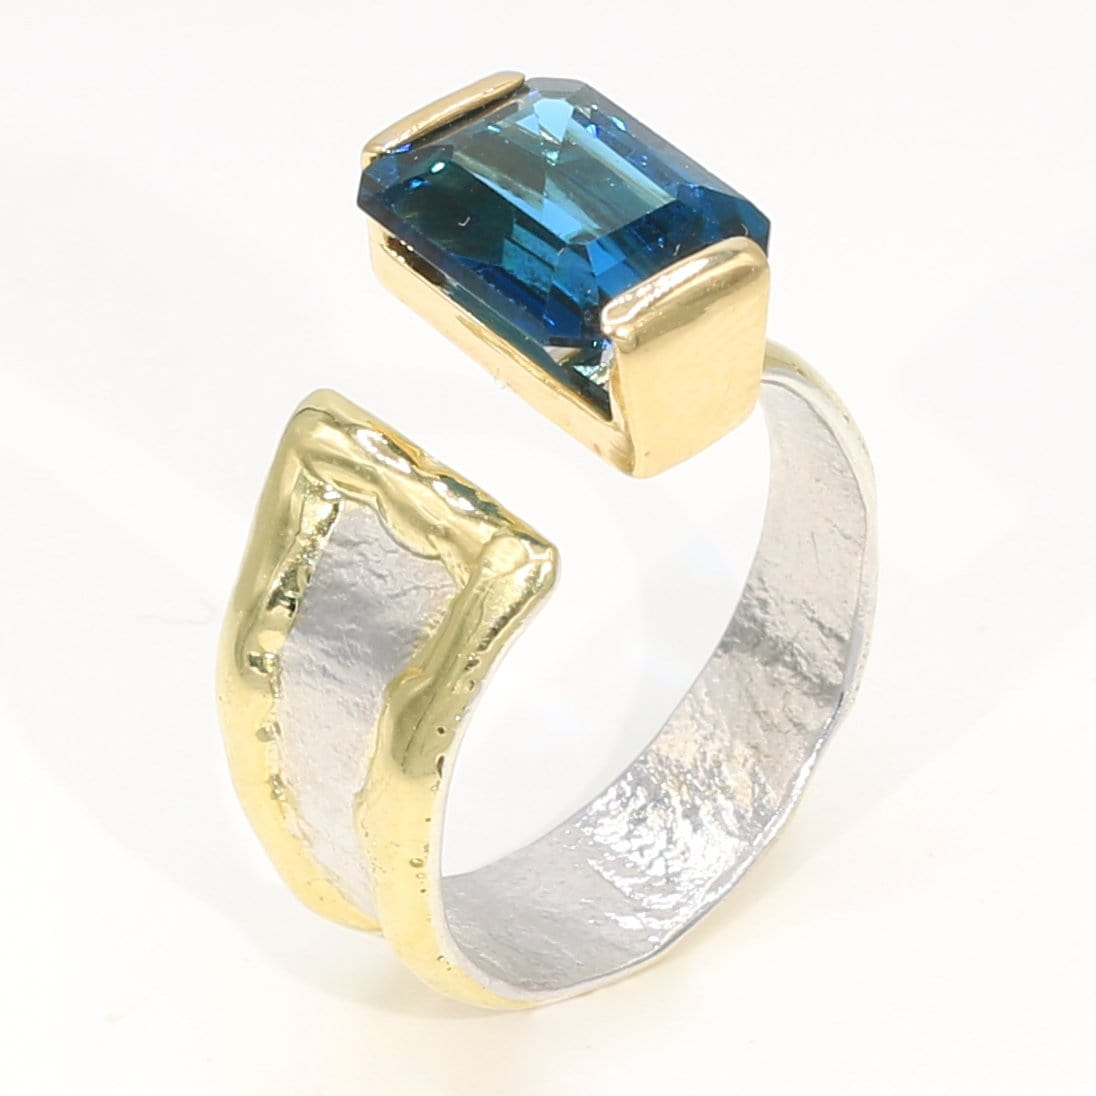 14K Gold & Crystalline Silver London Blue Topaz Ring - 35946-Fusion Designs-Renee Taylor Gallery